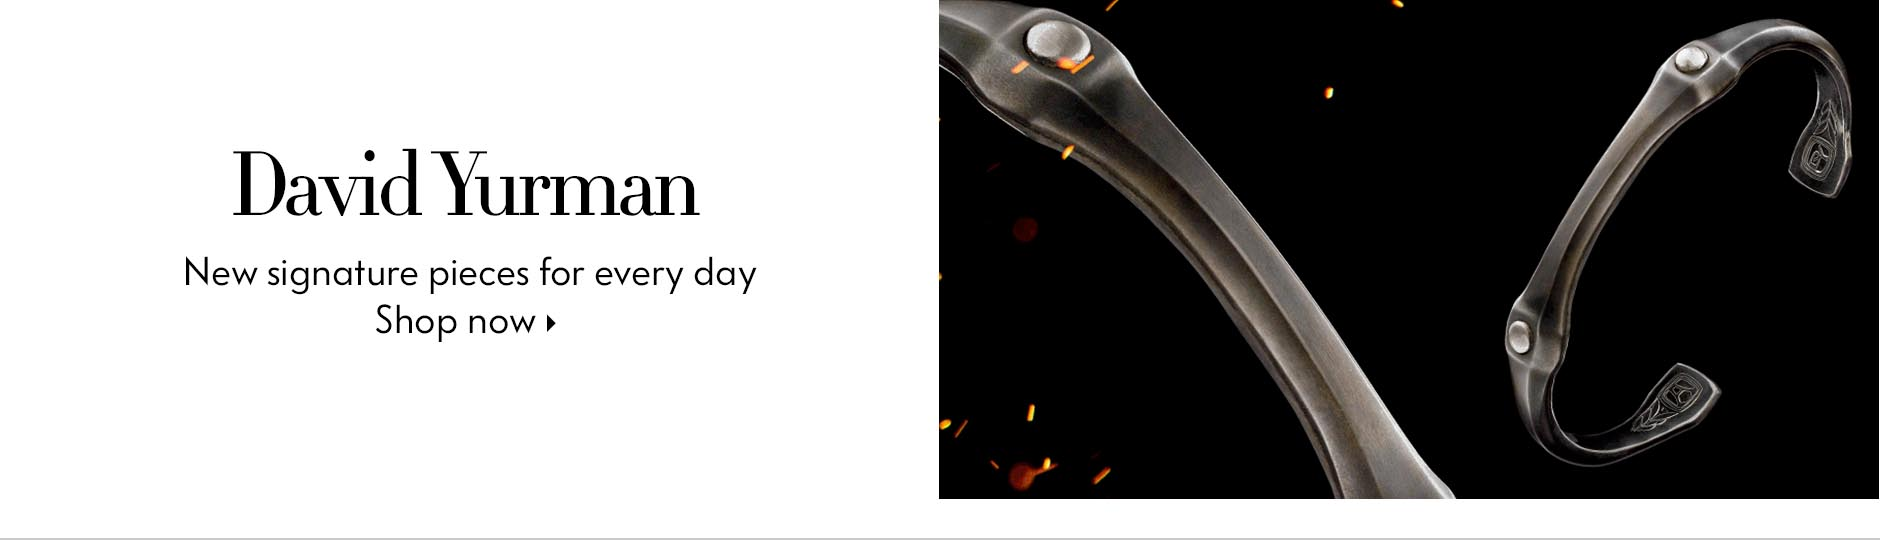 David Yurman - New signature pieces for every day